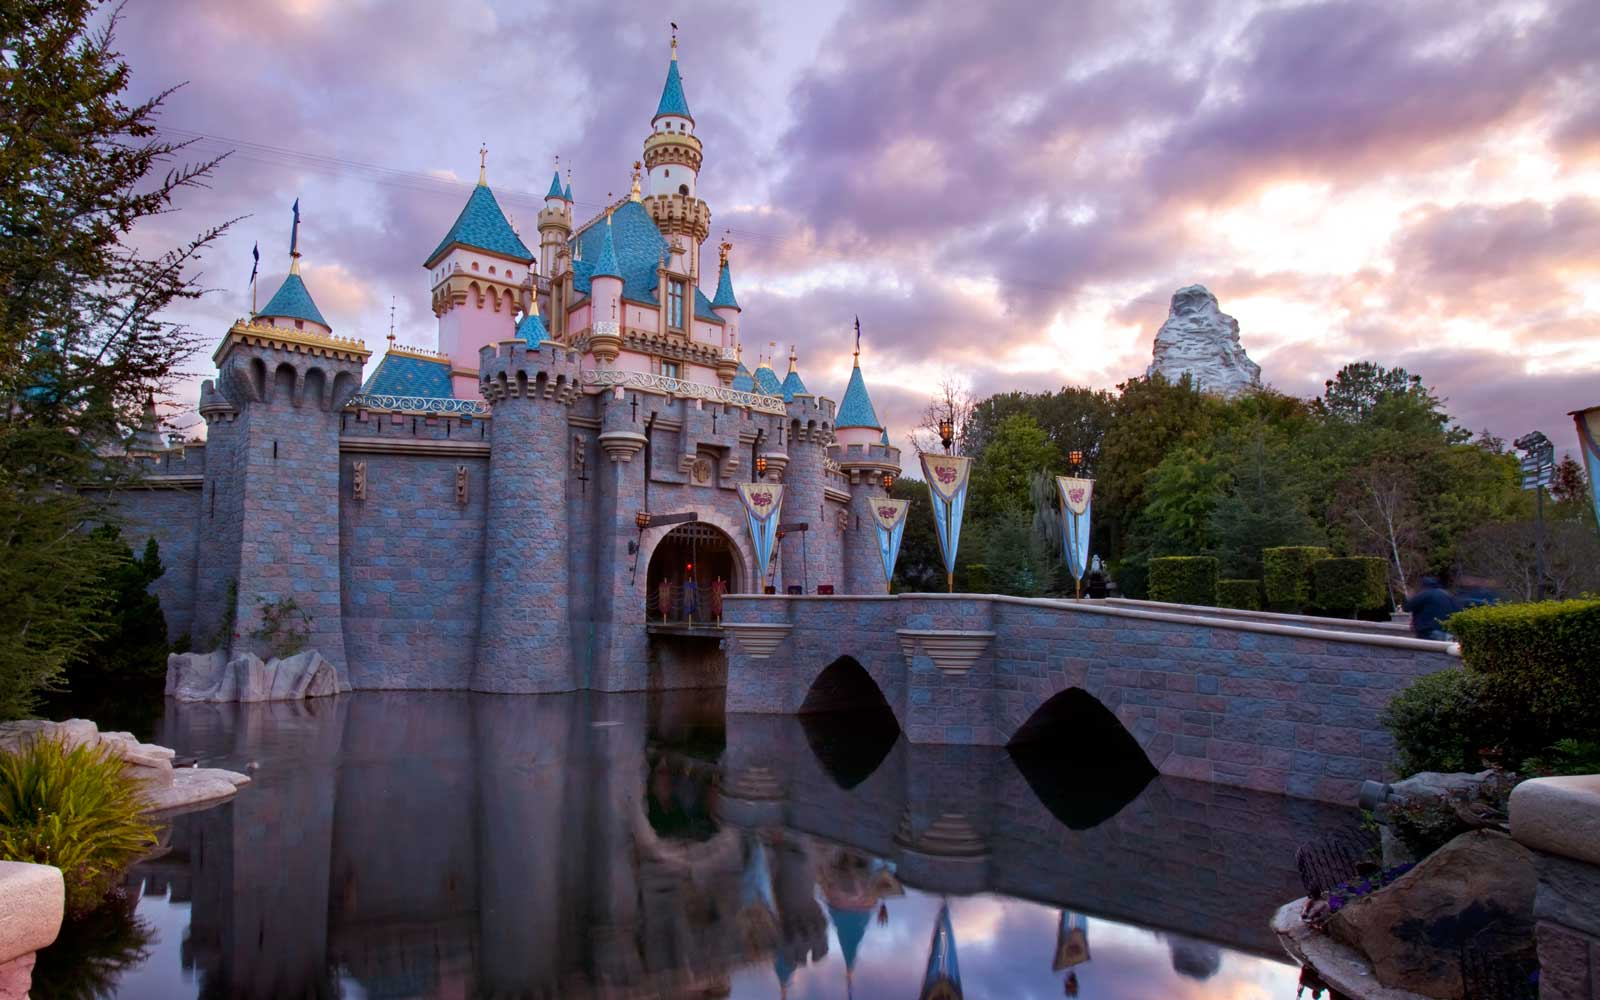 Disneyland - The Happiest Place on Earth lies only 25 miles away from our conference. Where else can you blast off into space, explore haunted mansions, and wish upon a star in the same day?